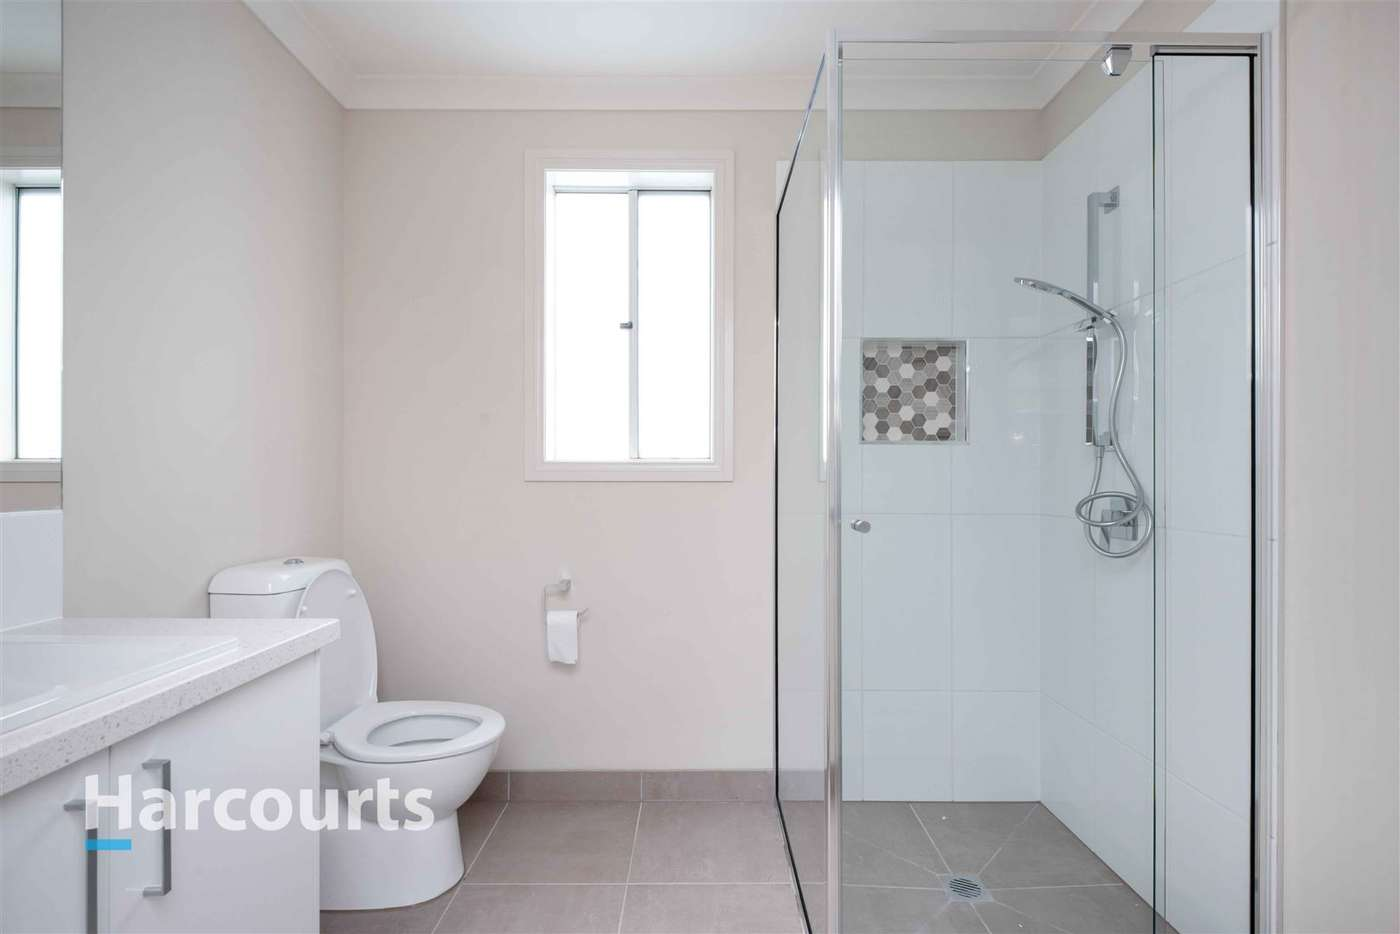 Sixth view of Homely house listing, 39 Australorp Drive, Clyde North VIC 3978